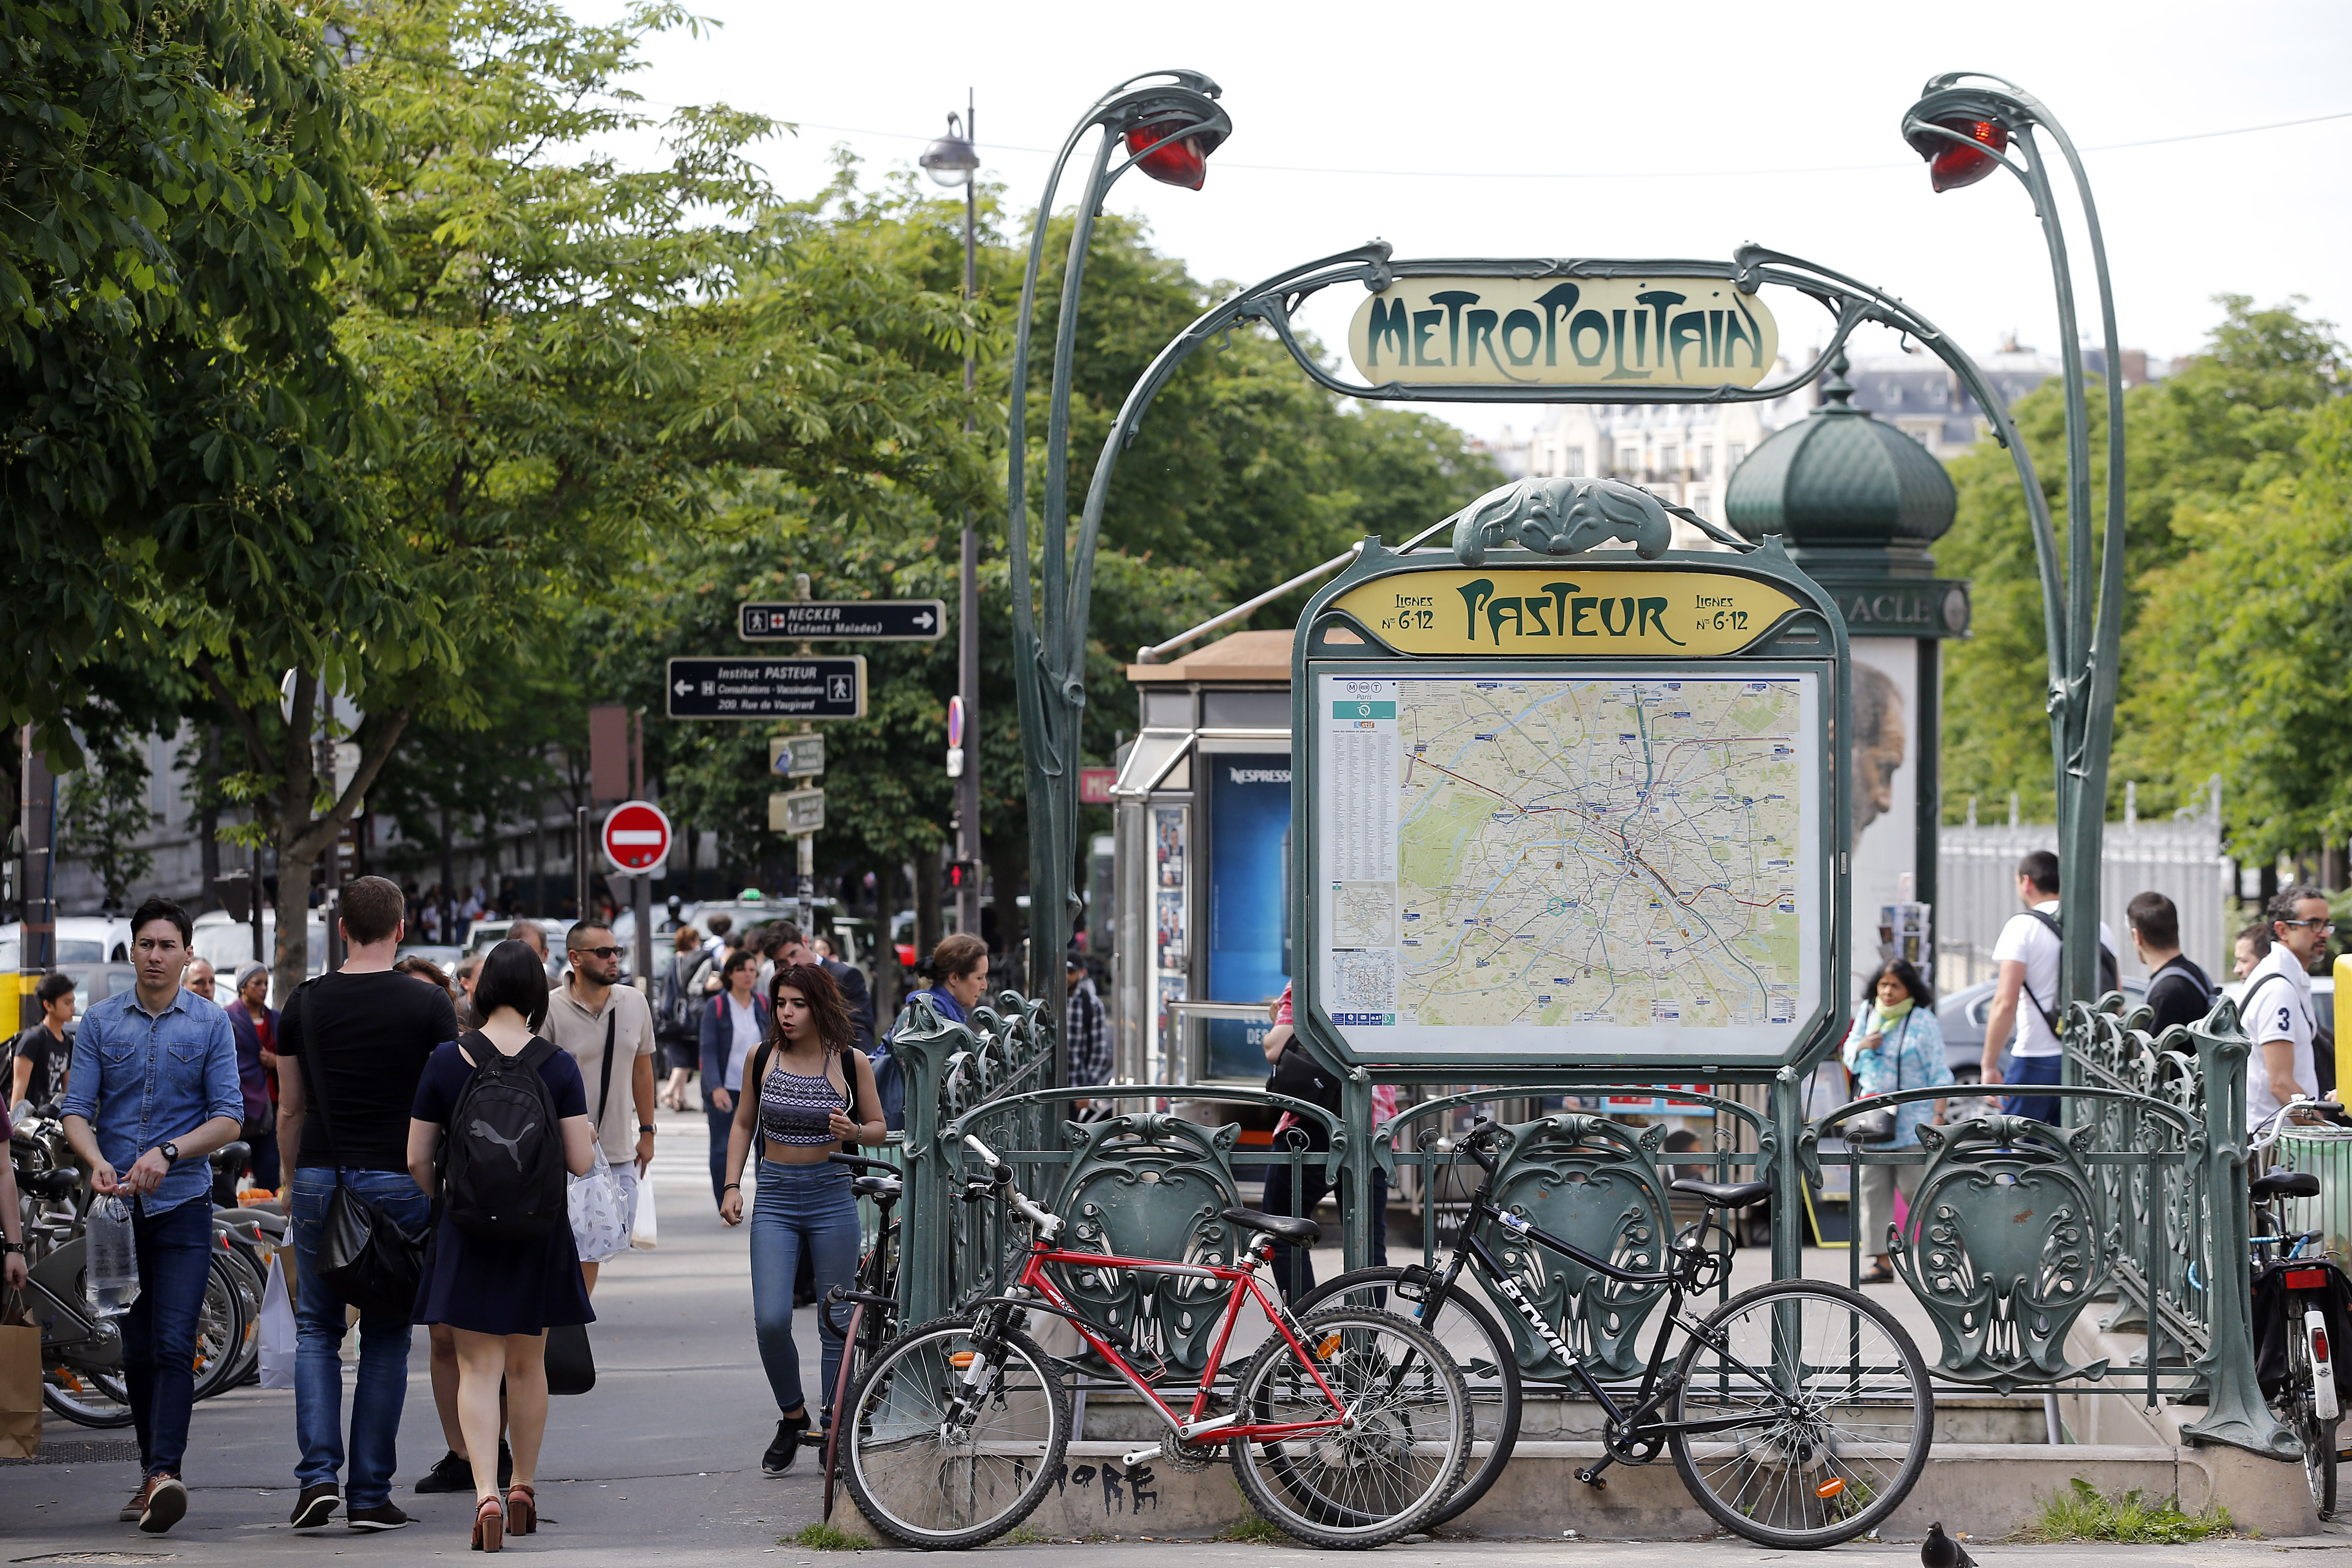 Exterior shot to entrance of Paris subway station. Bikes and passengers are surrounding the green iron entrance.